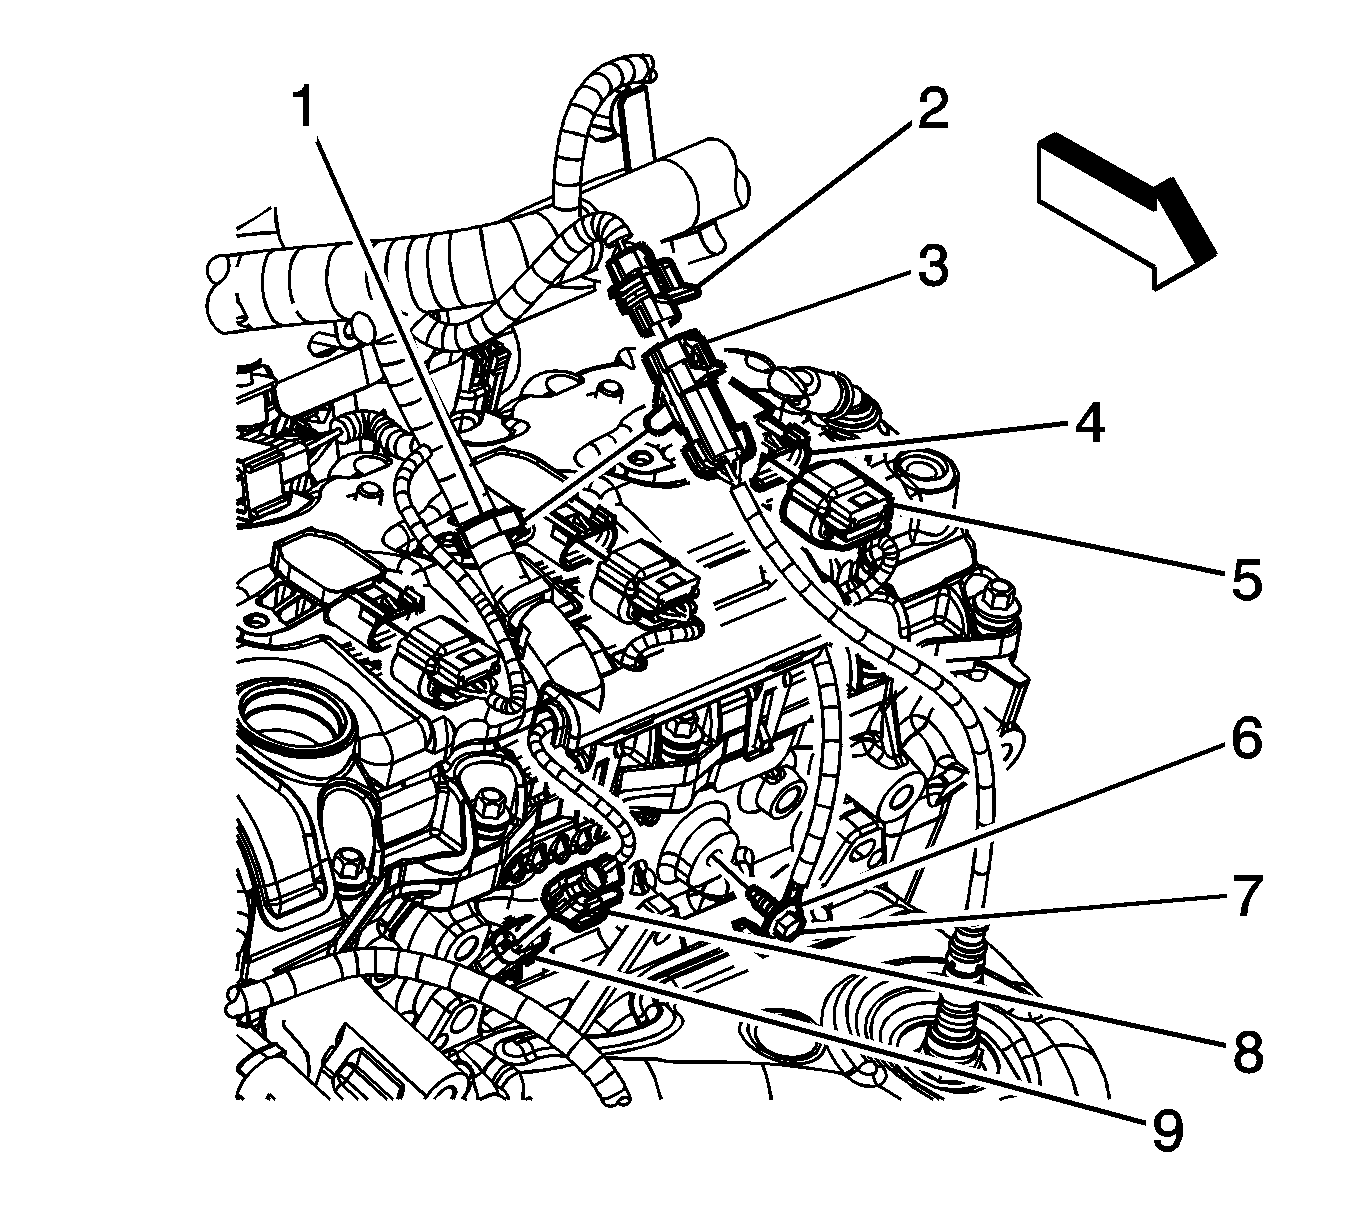 2009 Chevy Traverse Engine Sensor Diagram Wiring Diagram Wiper C Wiper C Bujinkan It